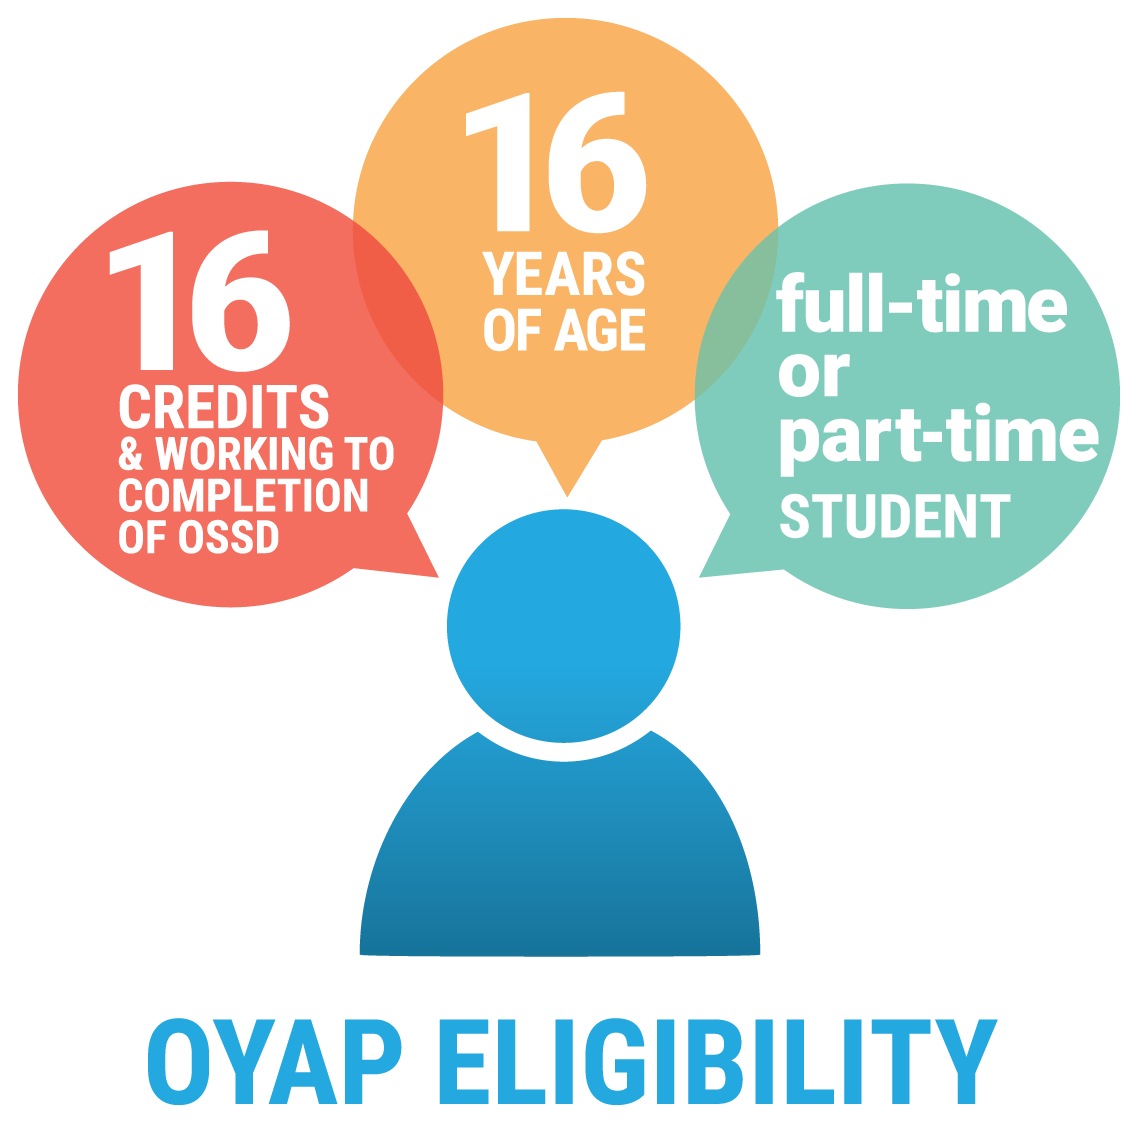 """OYAP eligibility diagram. Figure of a person with 3 speech bubbles. 1. """"16 credits and working to completion of OSSD"""". 2: """"16 years of age"""". 3: """"Full-time or part-time student""""."""